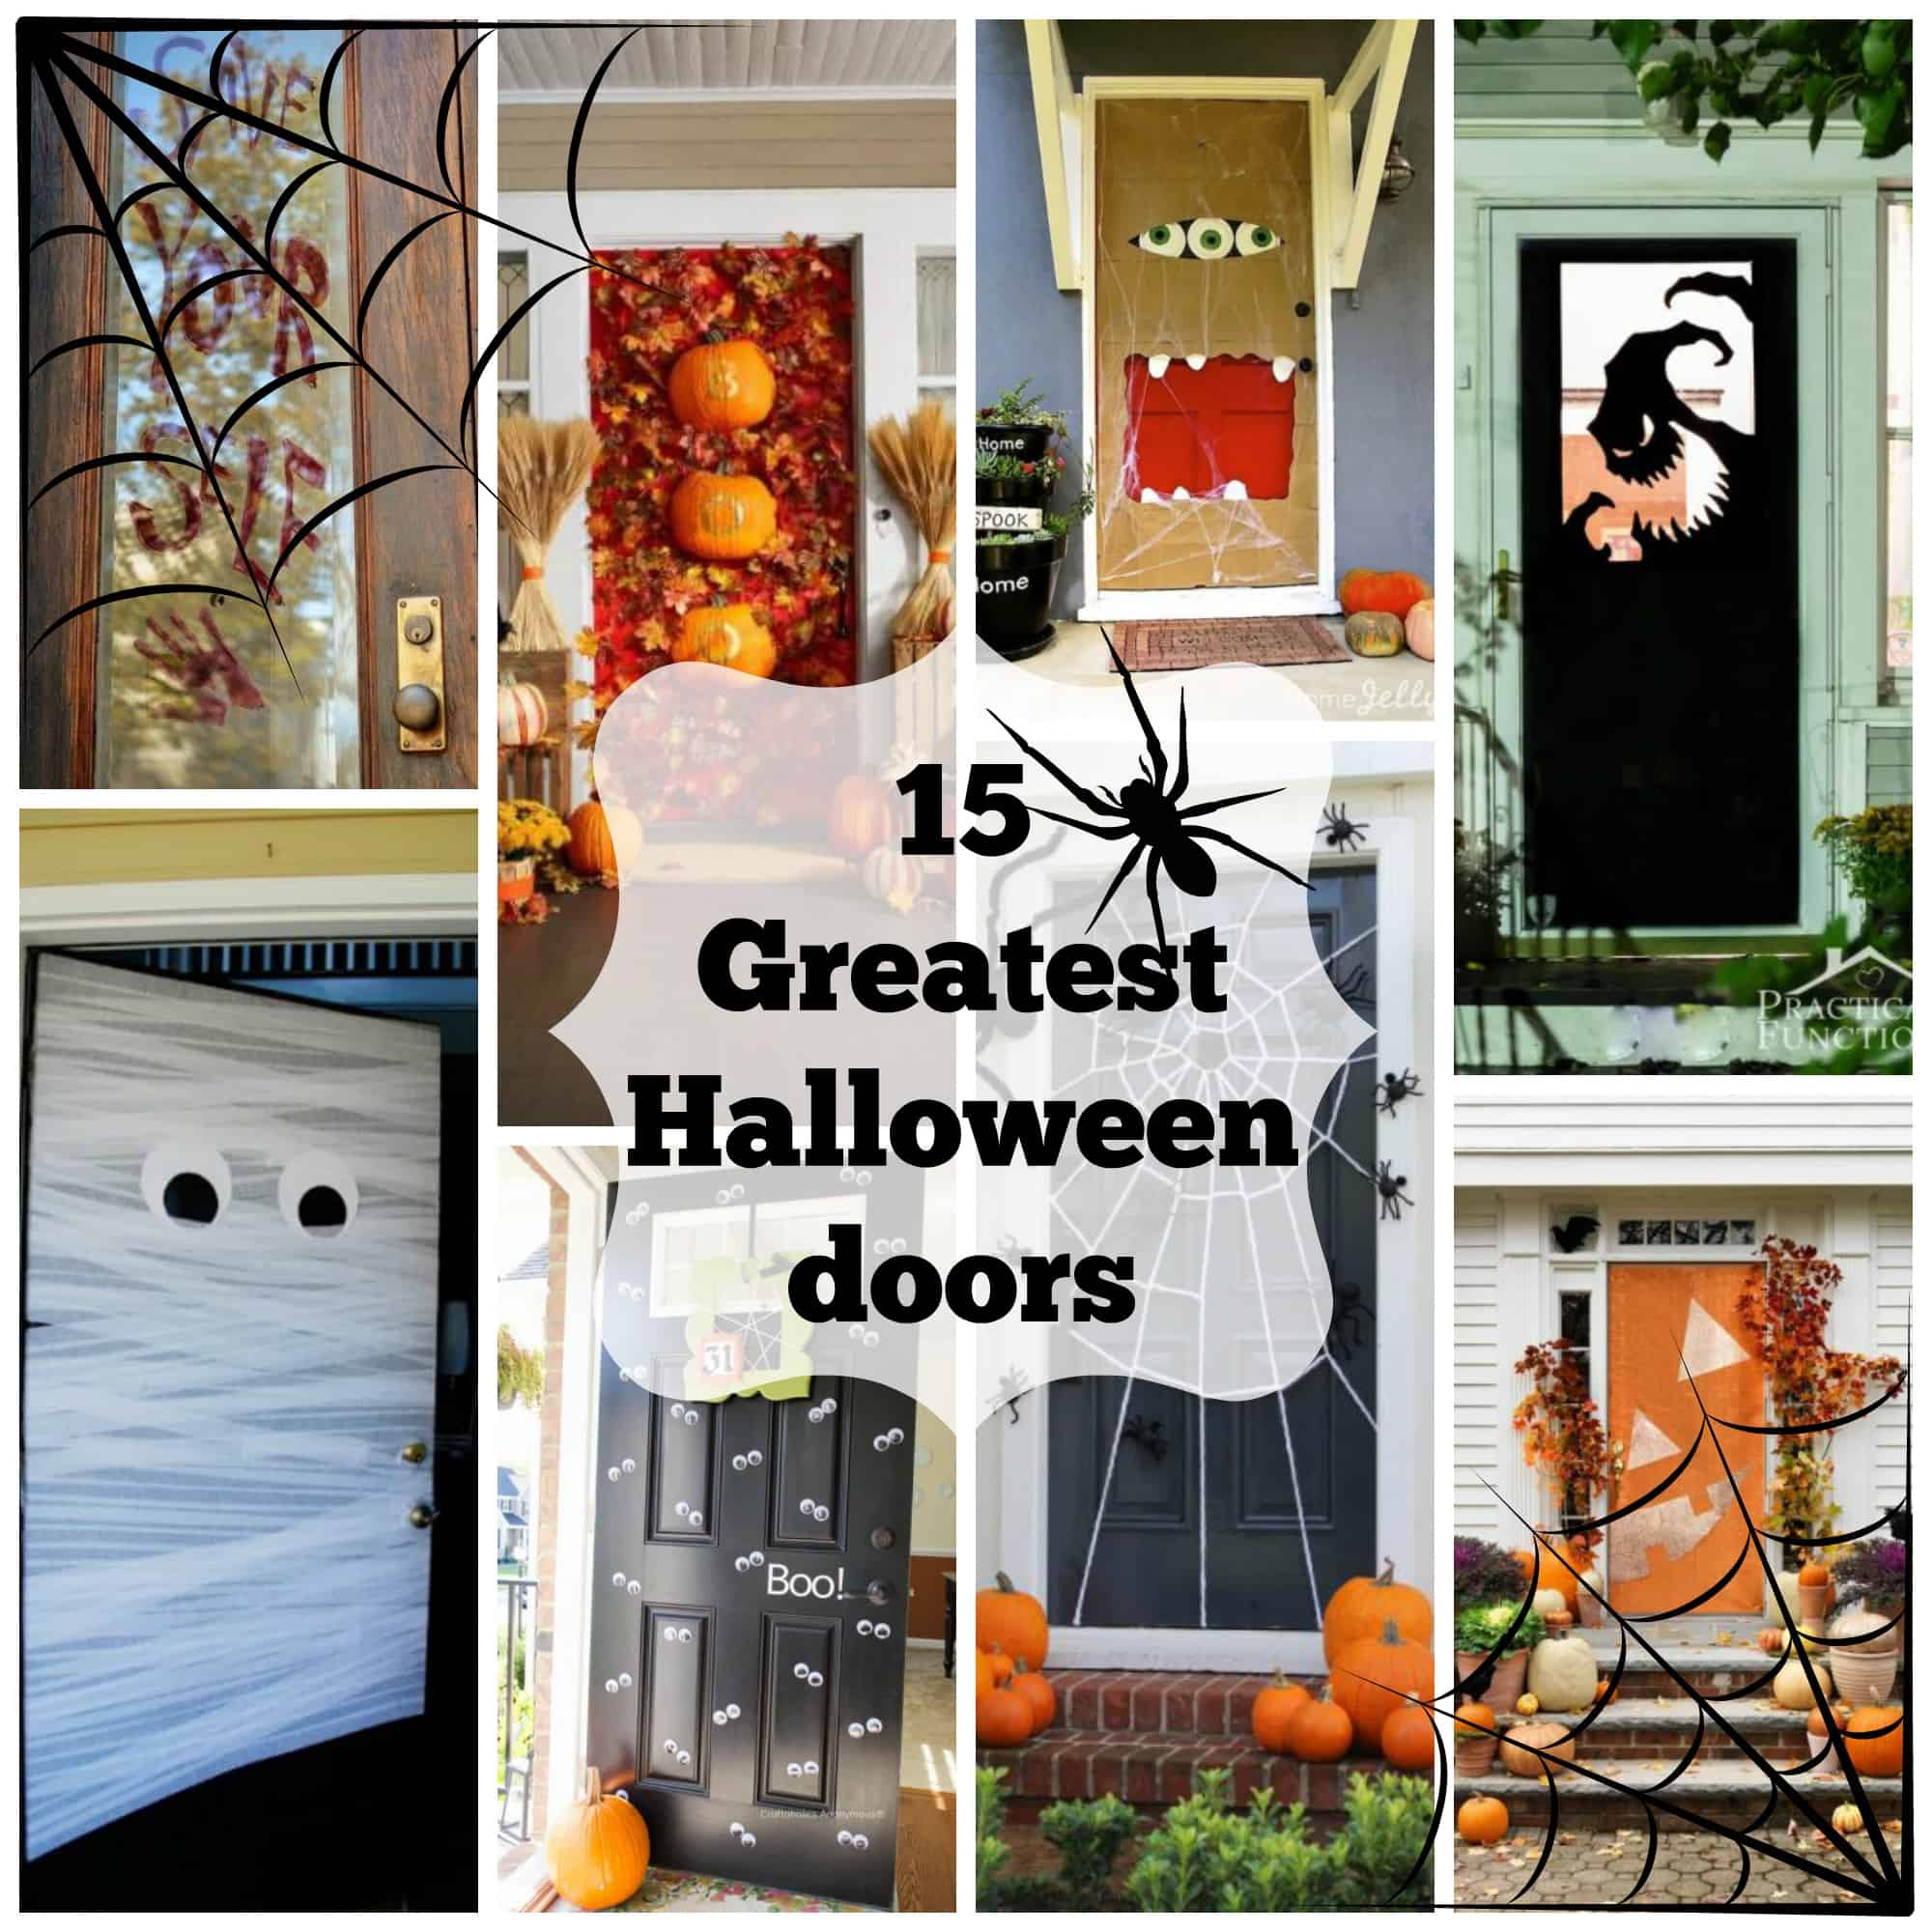 decor little riveting stickers interesting window free witch tomb fanciful wall cool halloween fd decals decorations manvi bats things hand silhouettes